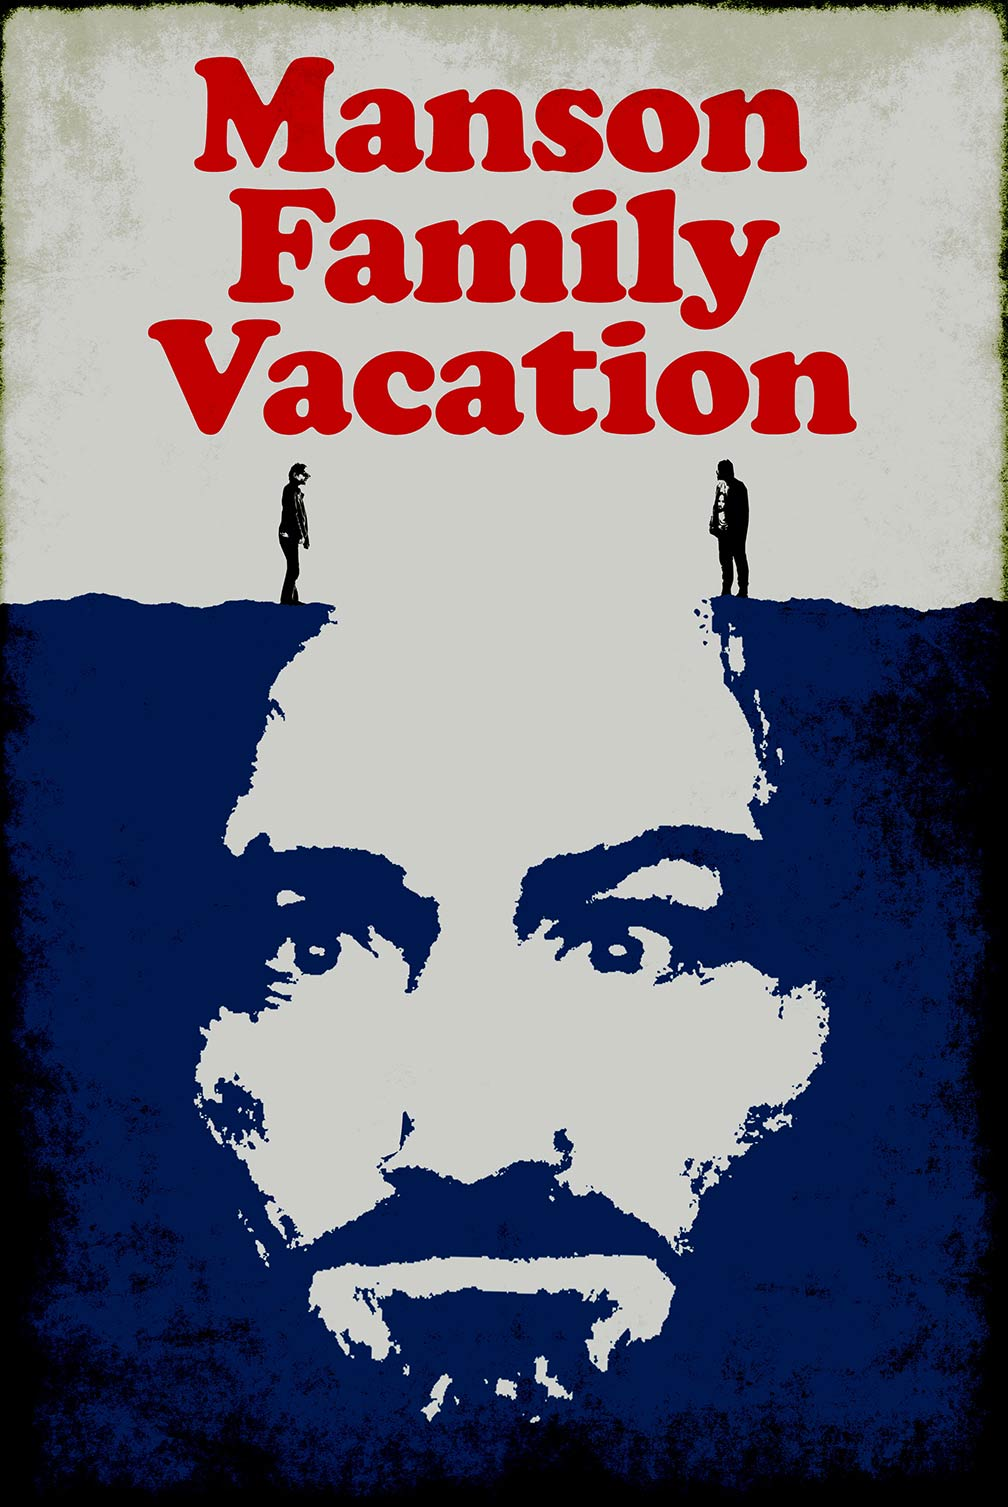 Manson Family Vacation Poster #1